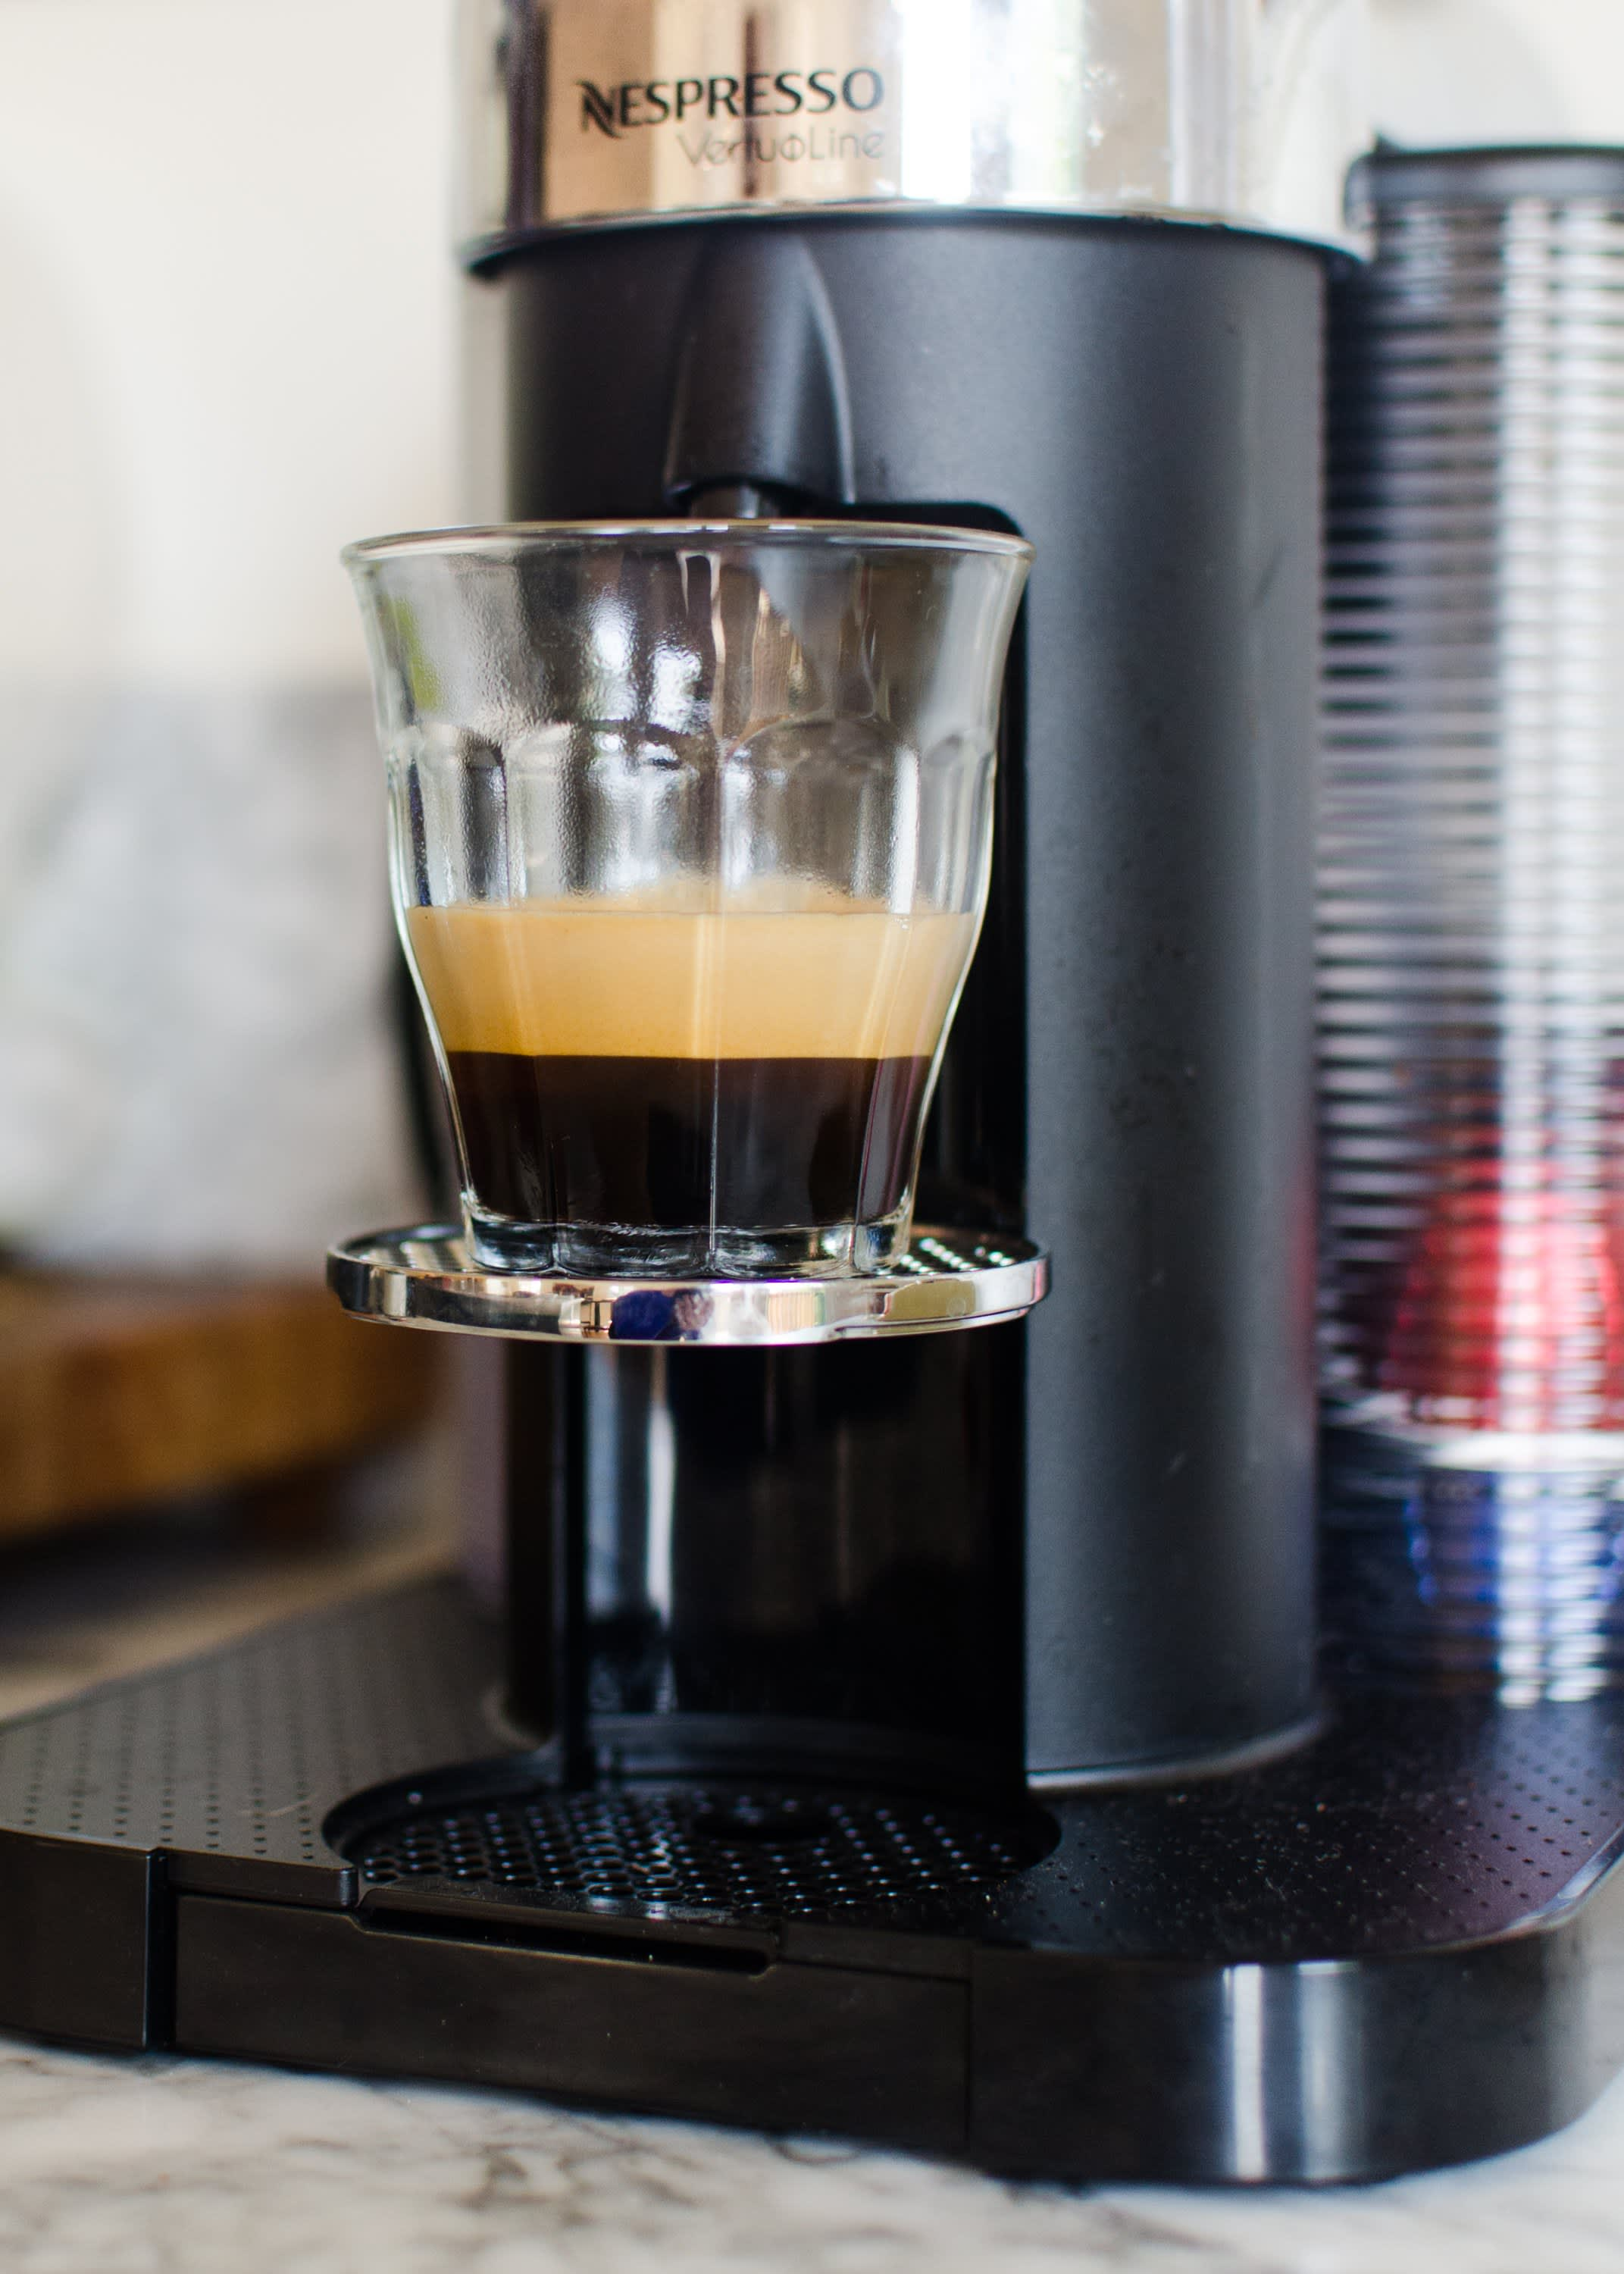 How To Make A Latte At Home Without An Espresso Machine Kitchn